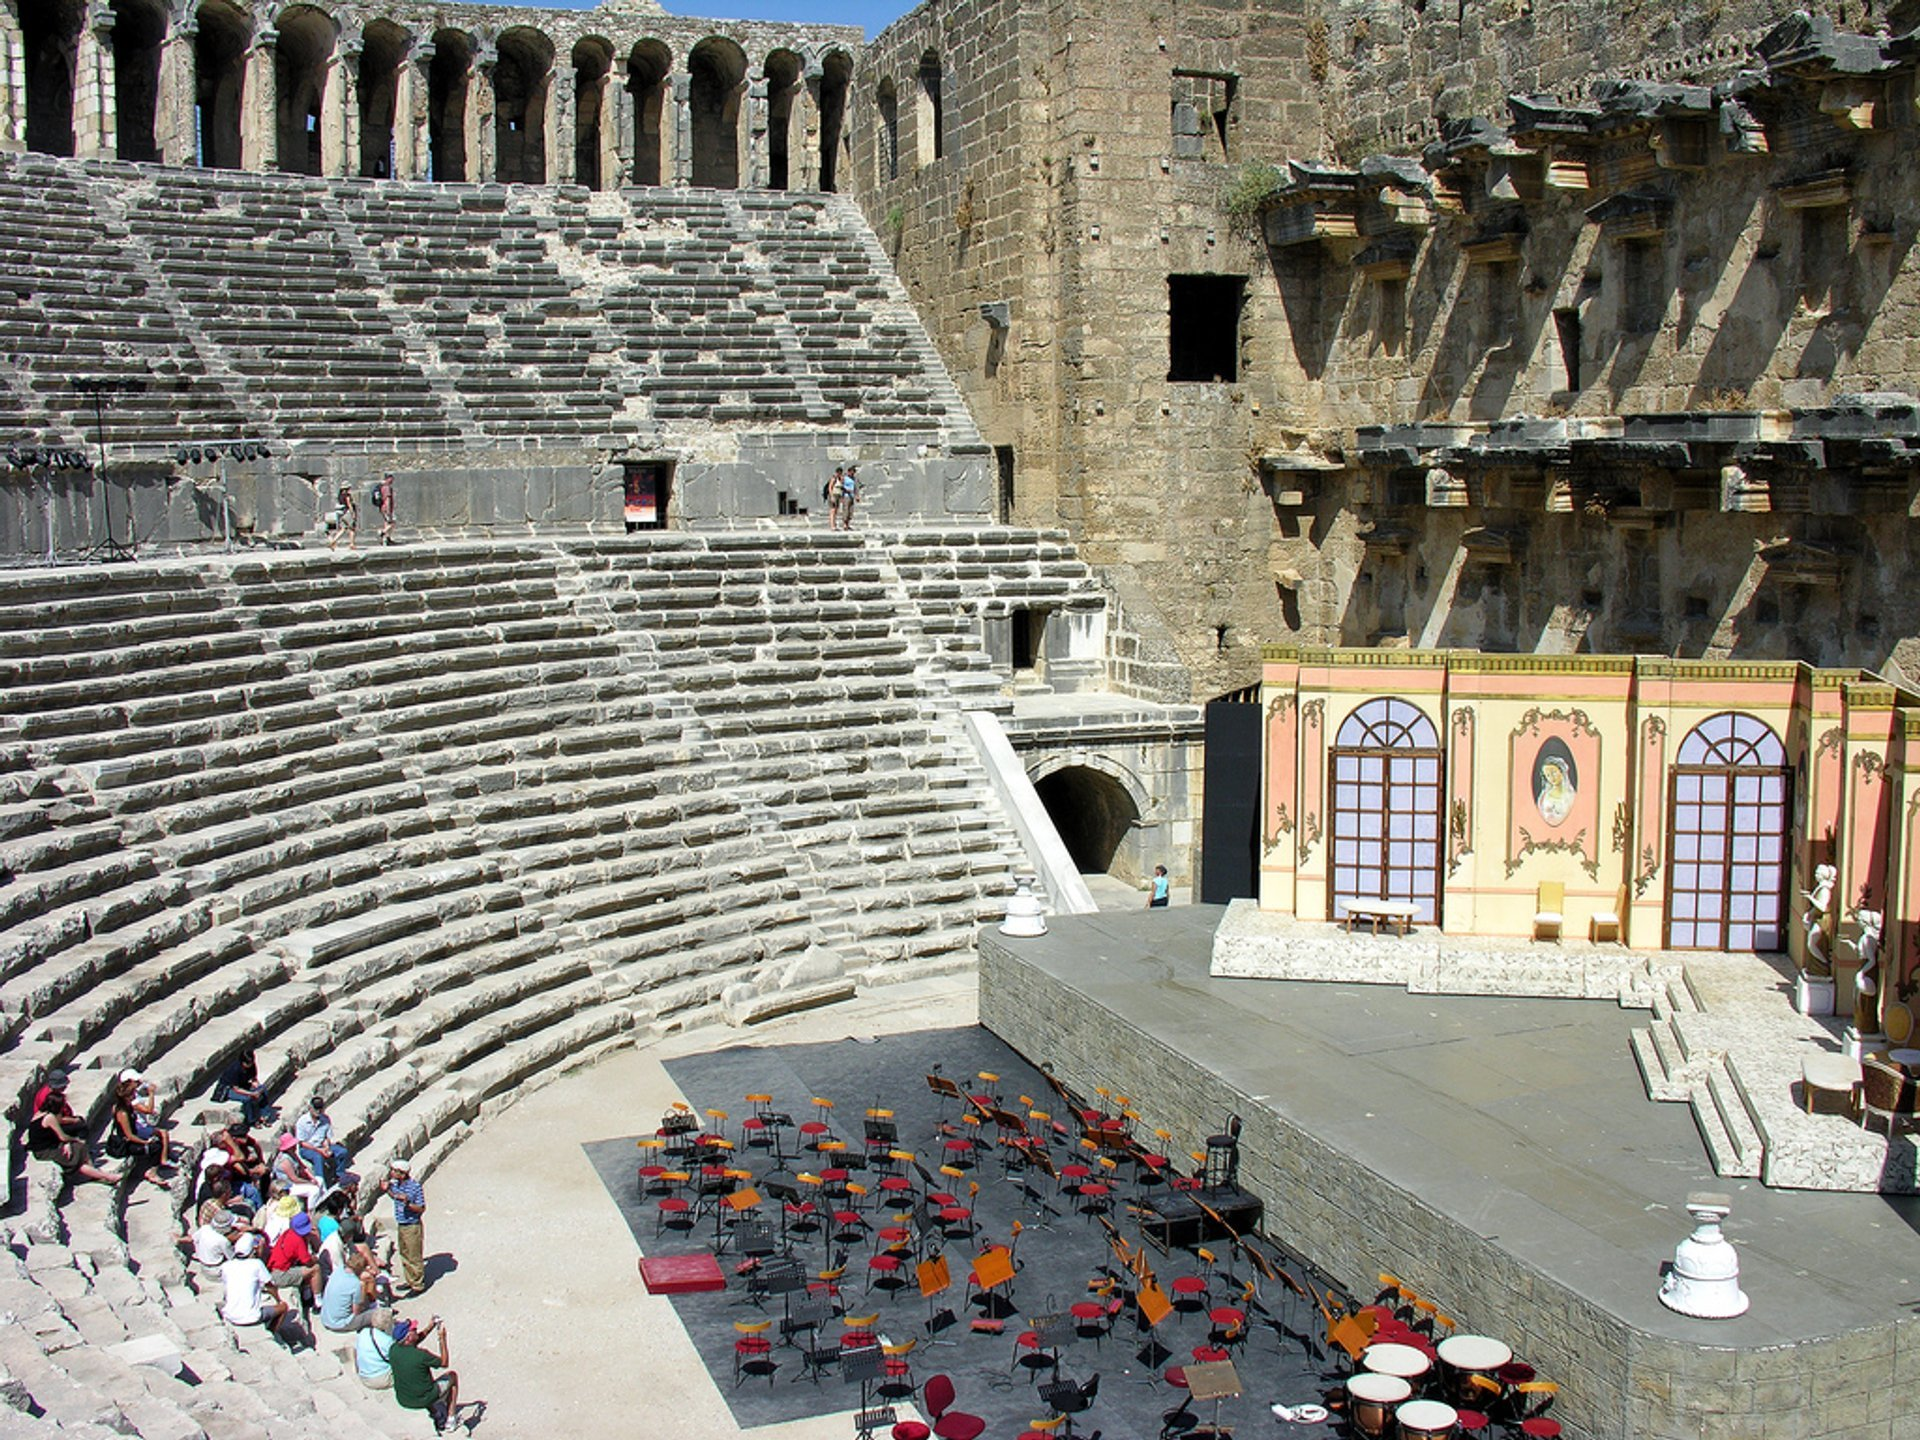 Aspendos Opera and Ballet Festival in Turkey 2019 - Best Time